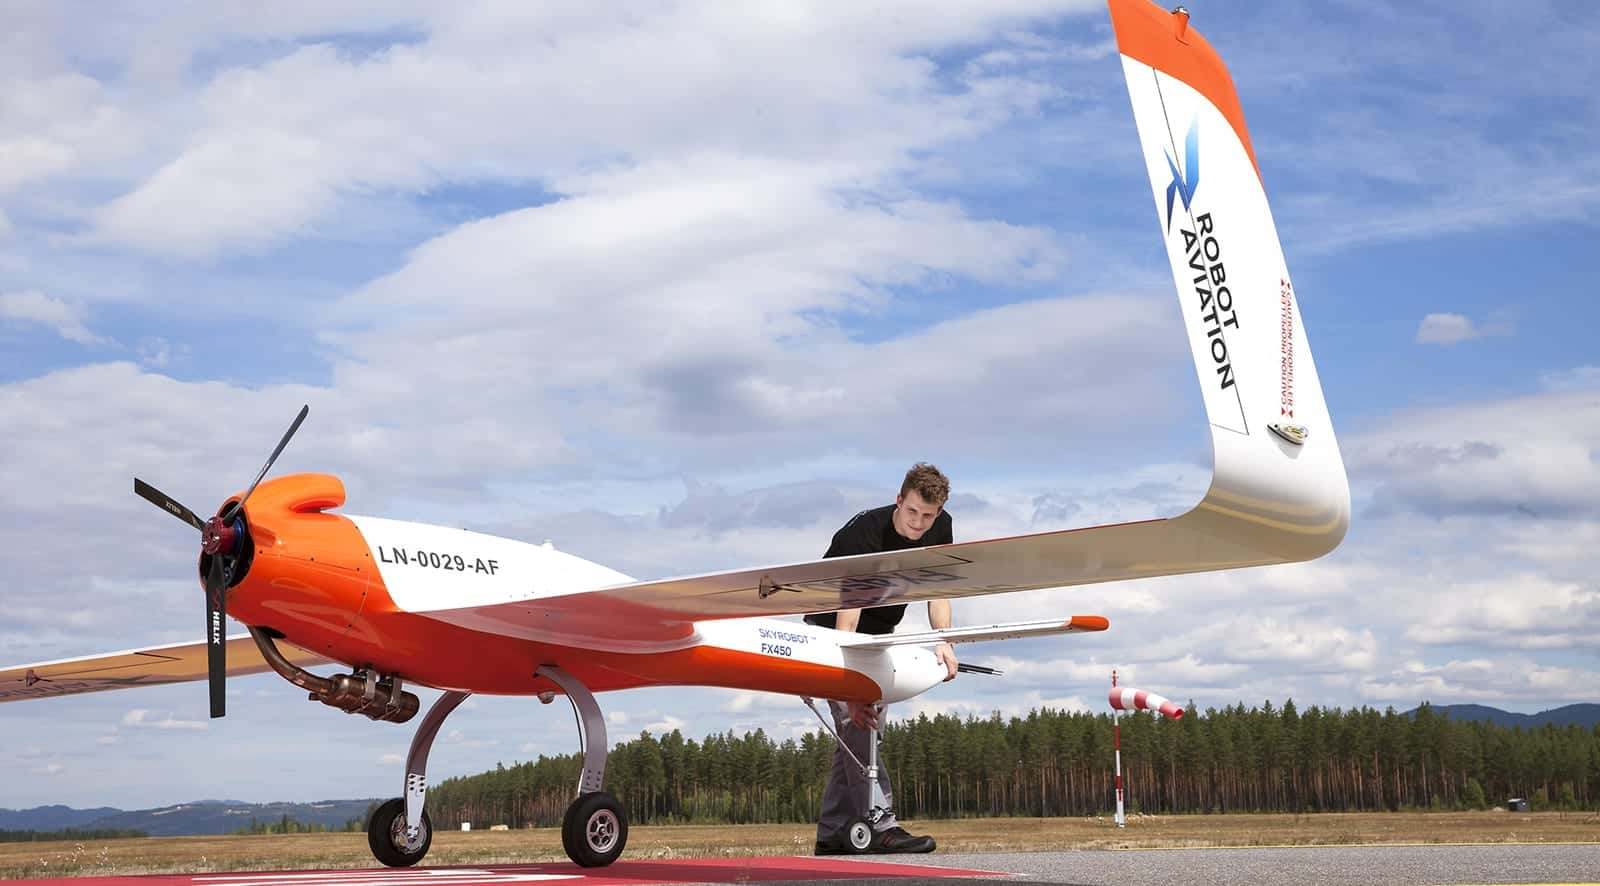 SkyRobot FX450 Fixed Wing UAV